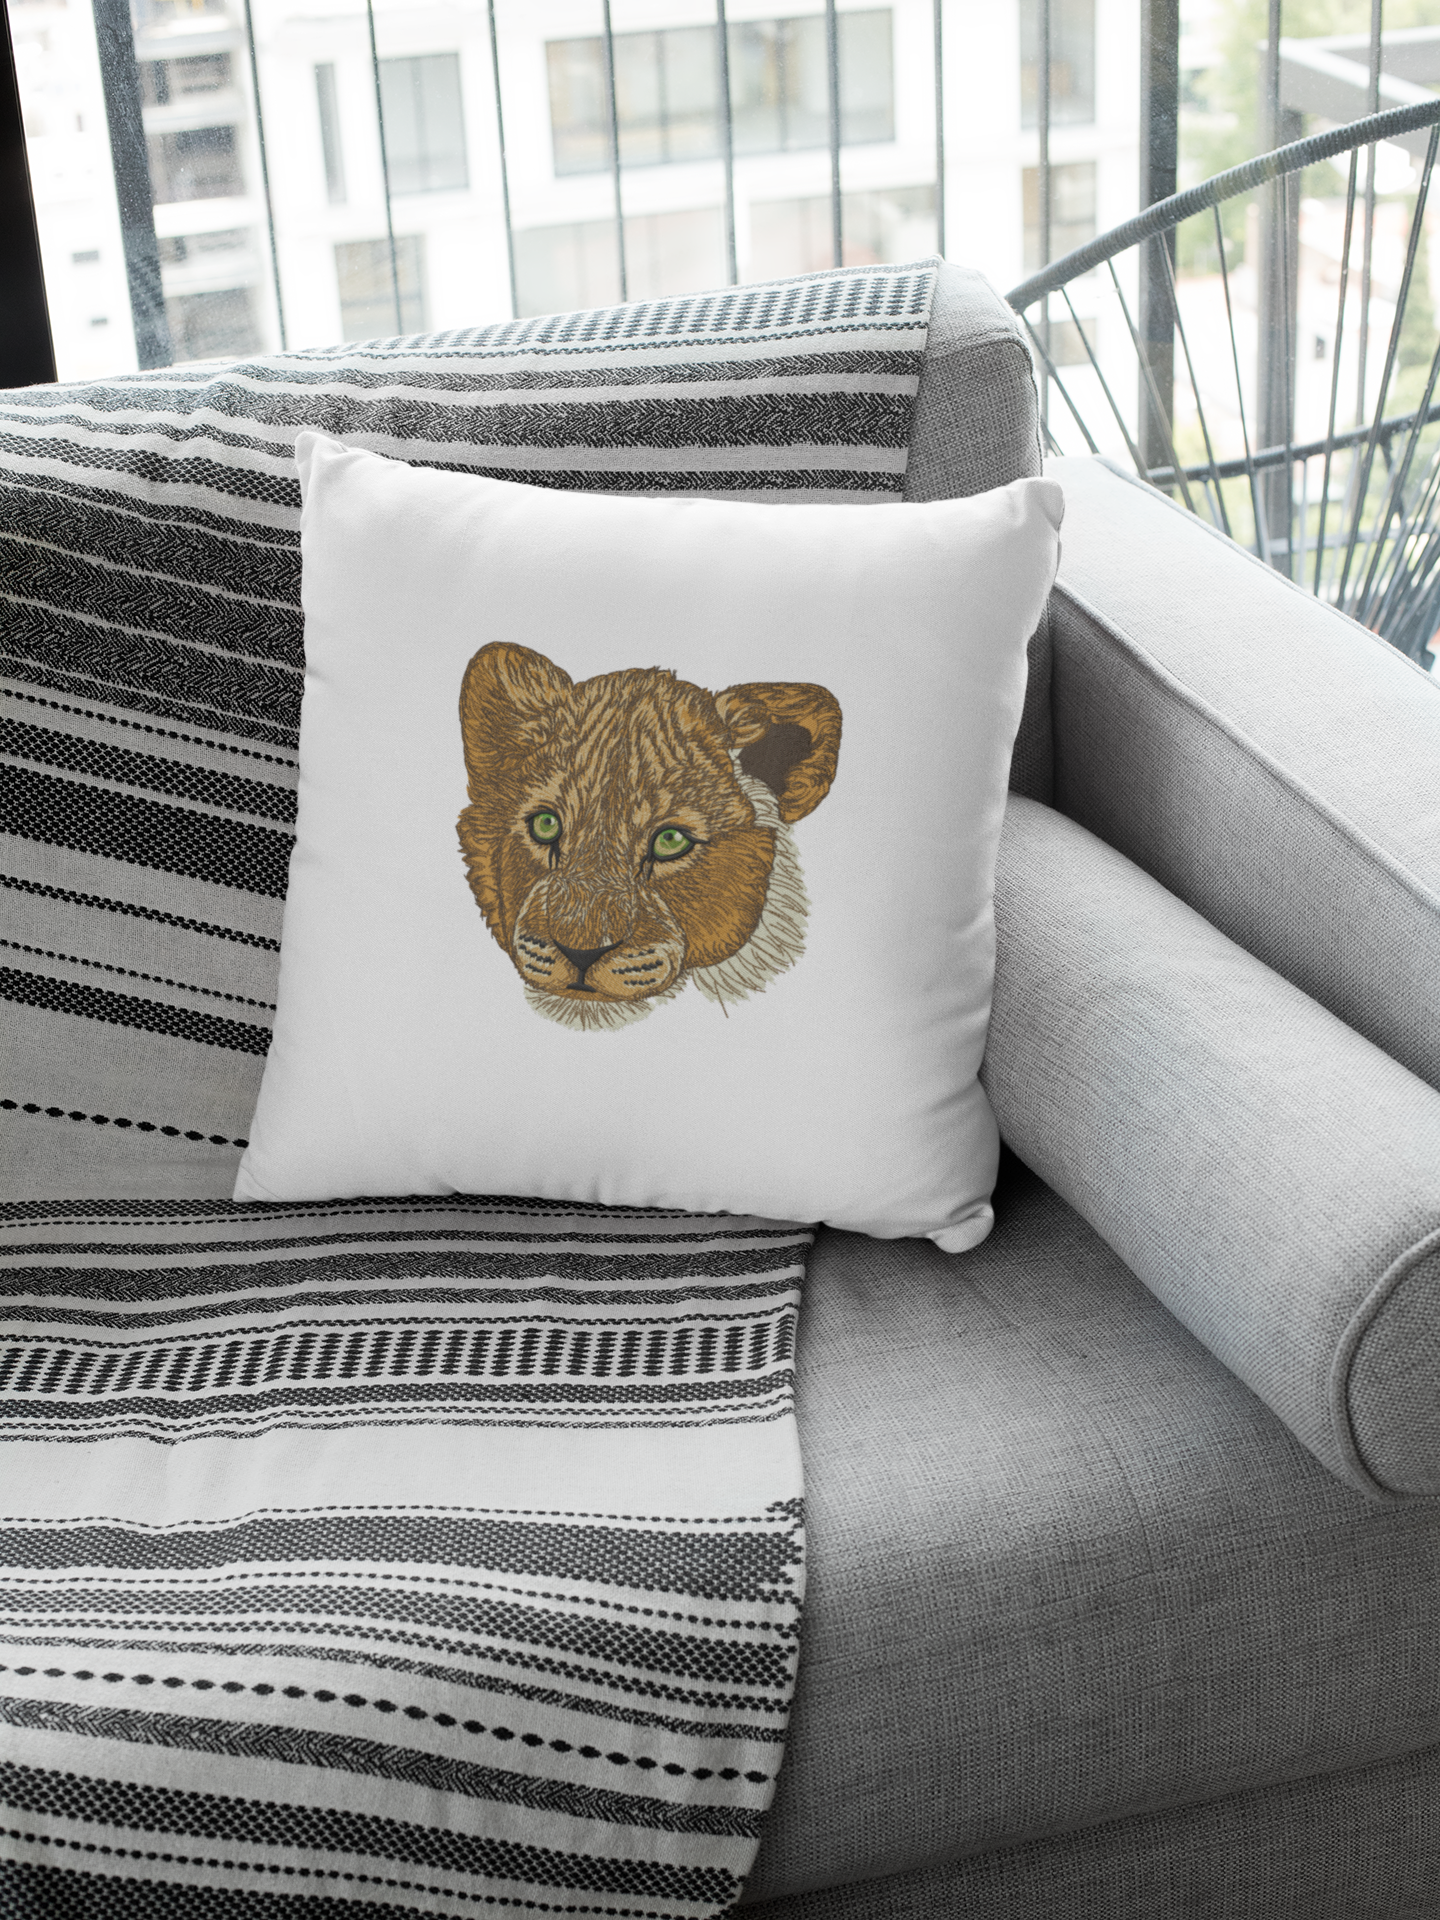 Embroidered pillow with Little lion design